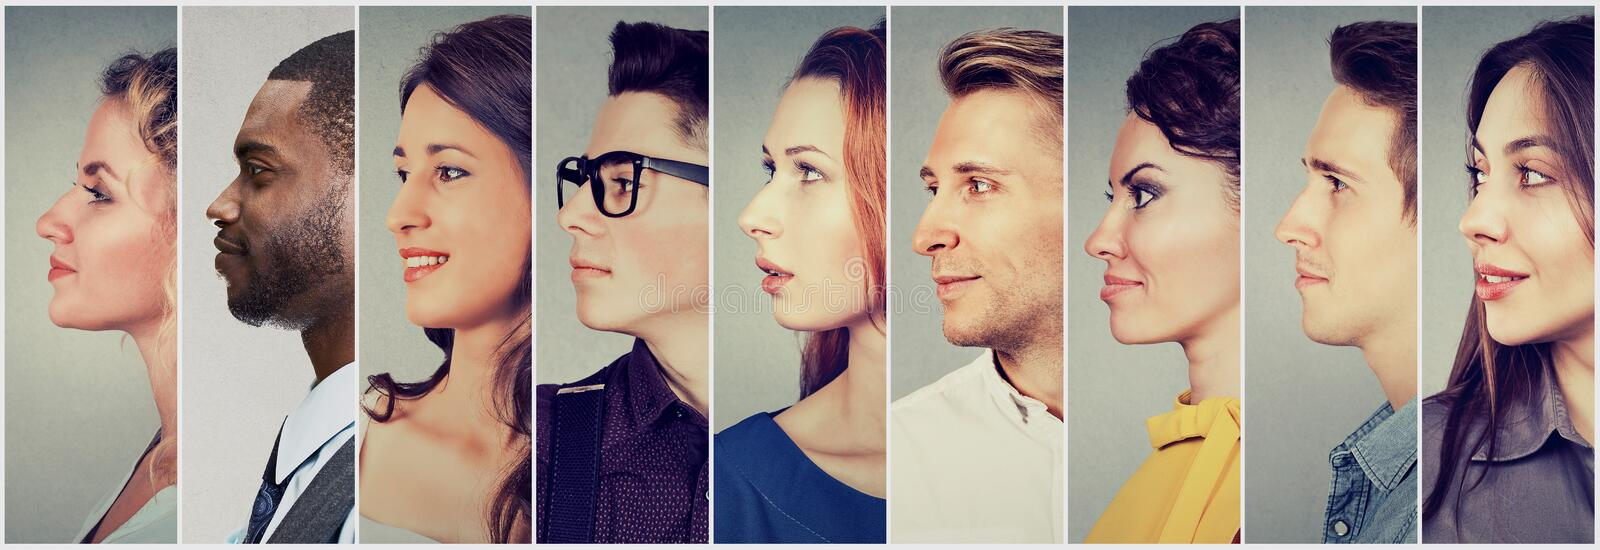 Profiles of multicultural people men and women royalty free stock photo